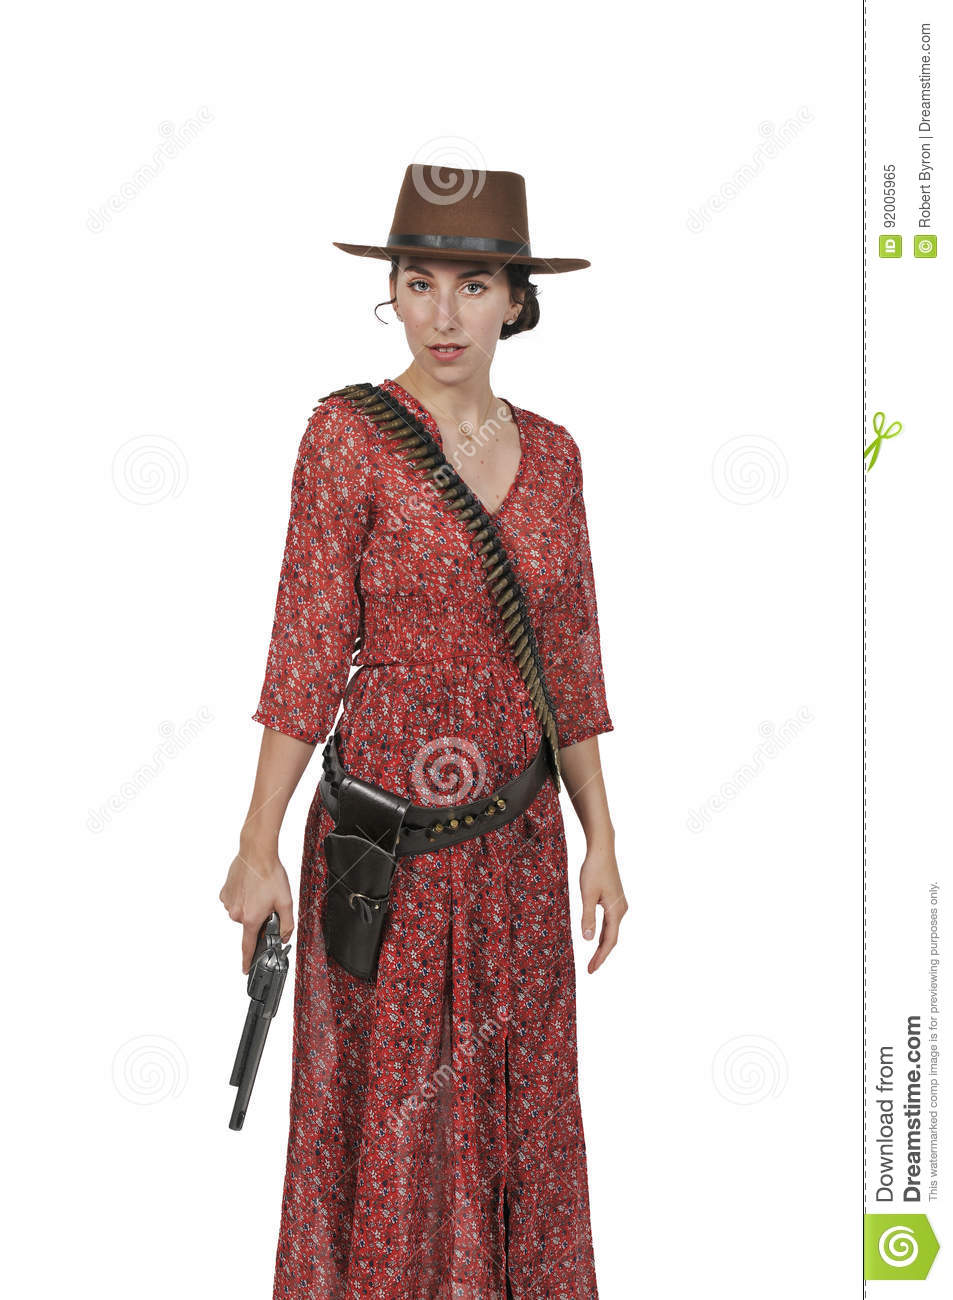 63ae2851f95 Cowgirl with relvolver stock image. Image of glamour - 92005965